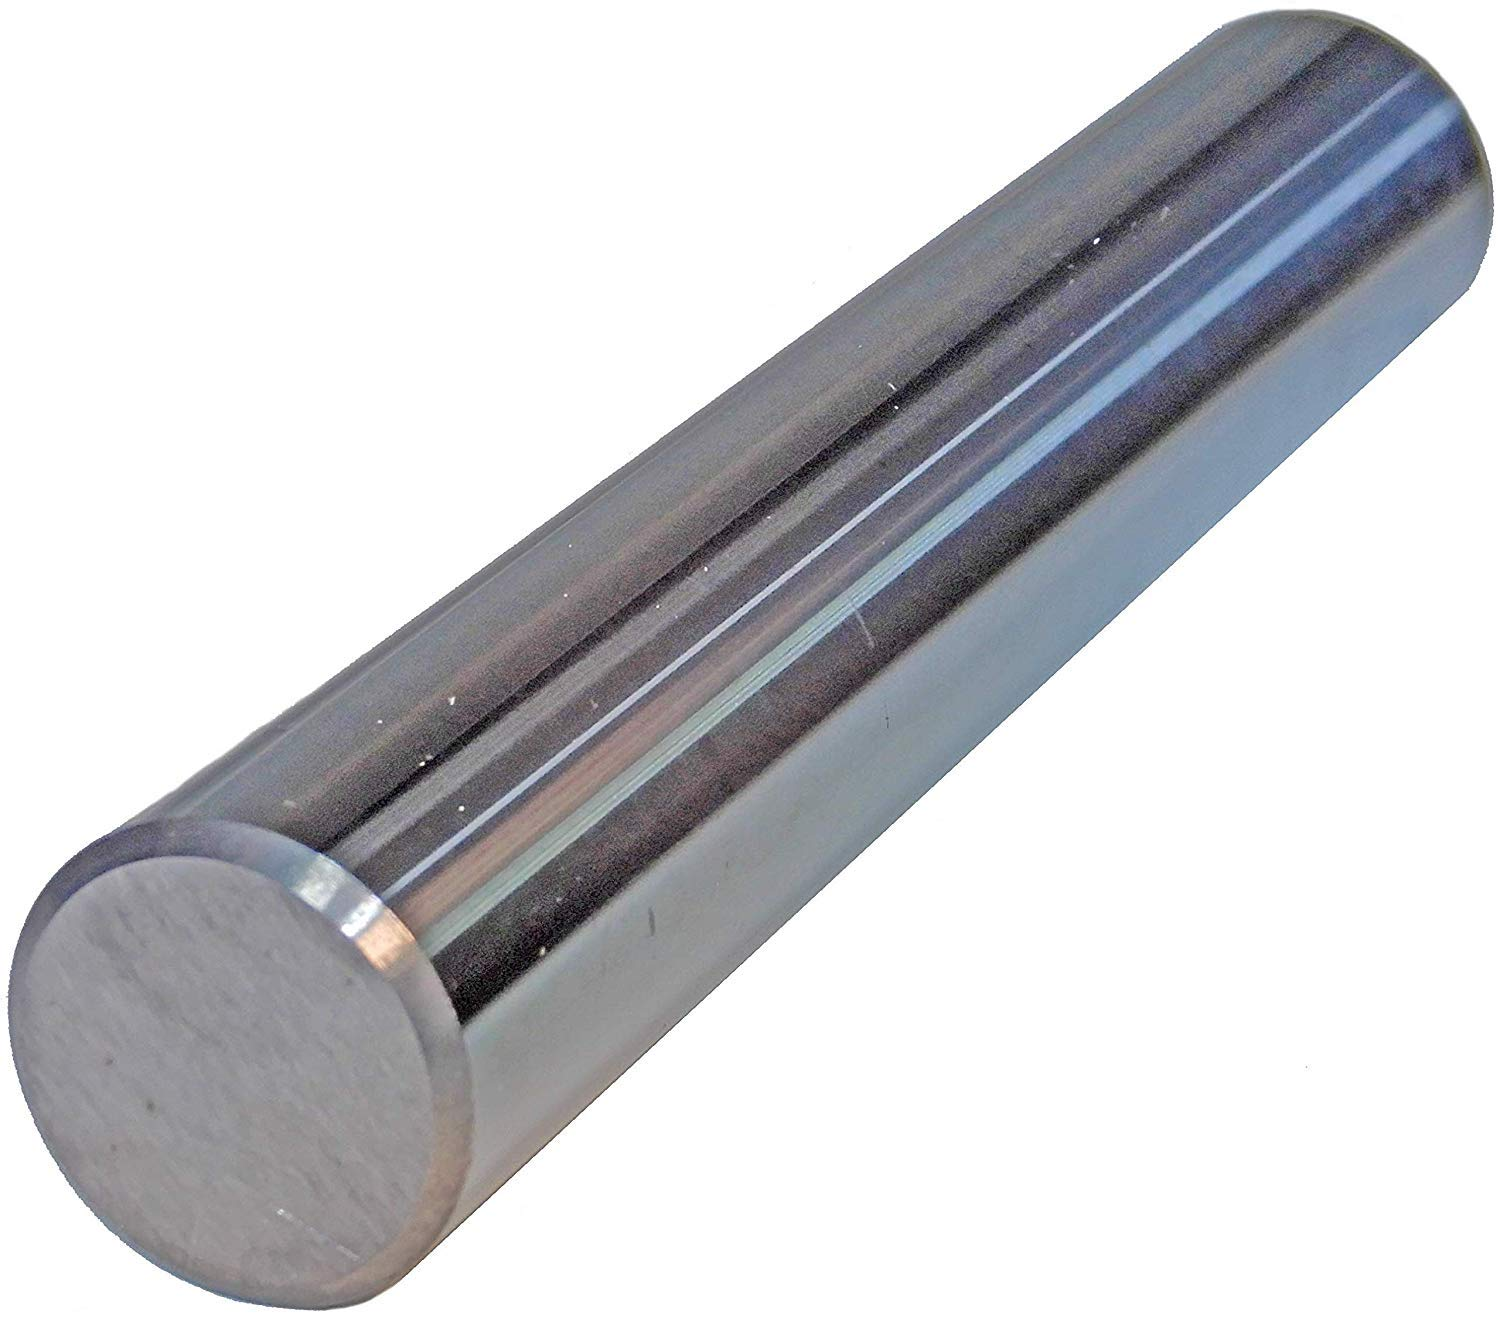 Castlebar 1-1/8'' X 4-1/2'', Grade 9008/C2, Ground Polished Chamfered Cemented Tungsten Carbide Round Rod by Castlebar